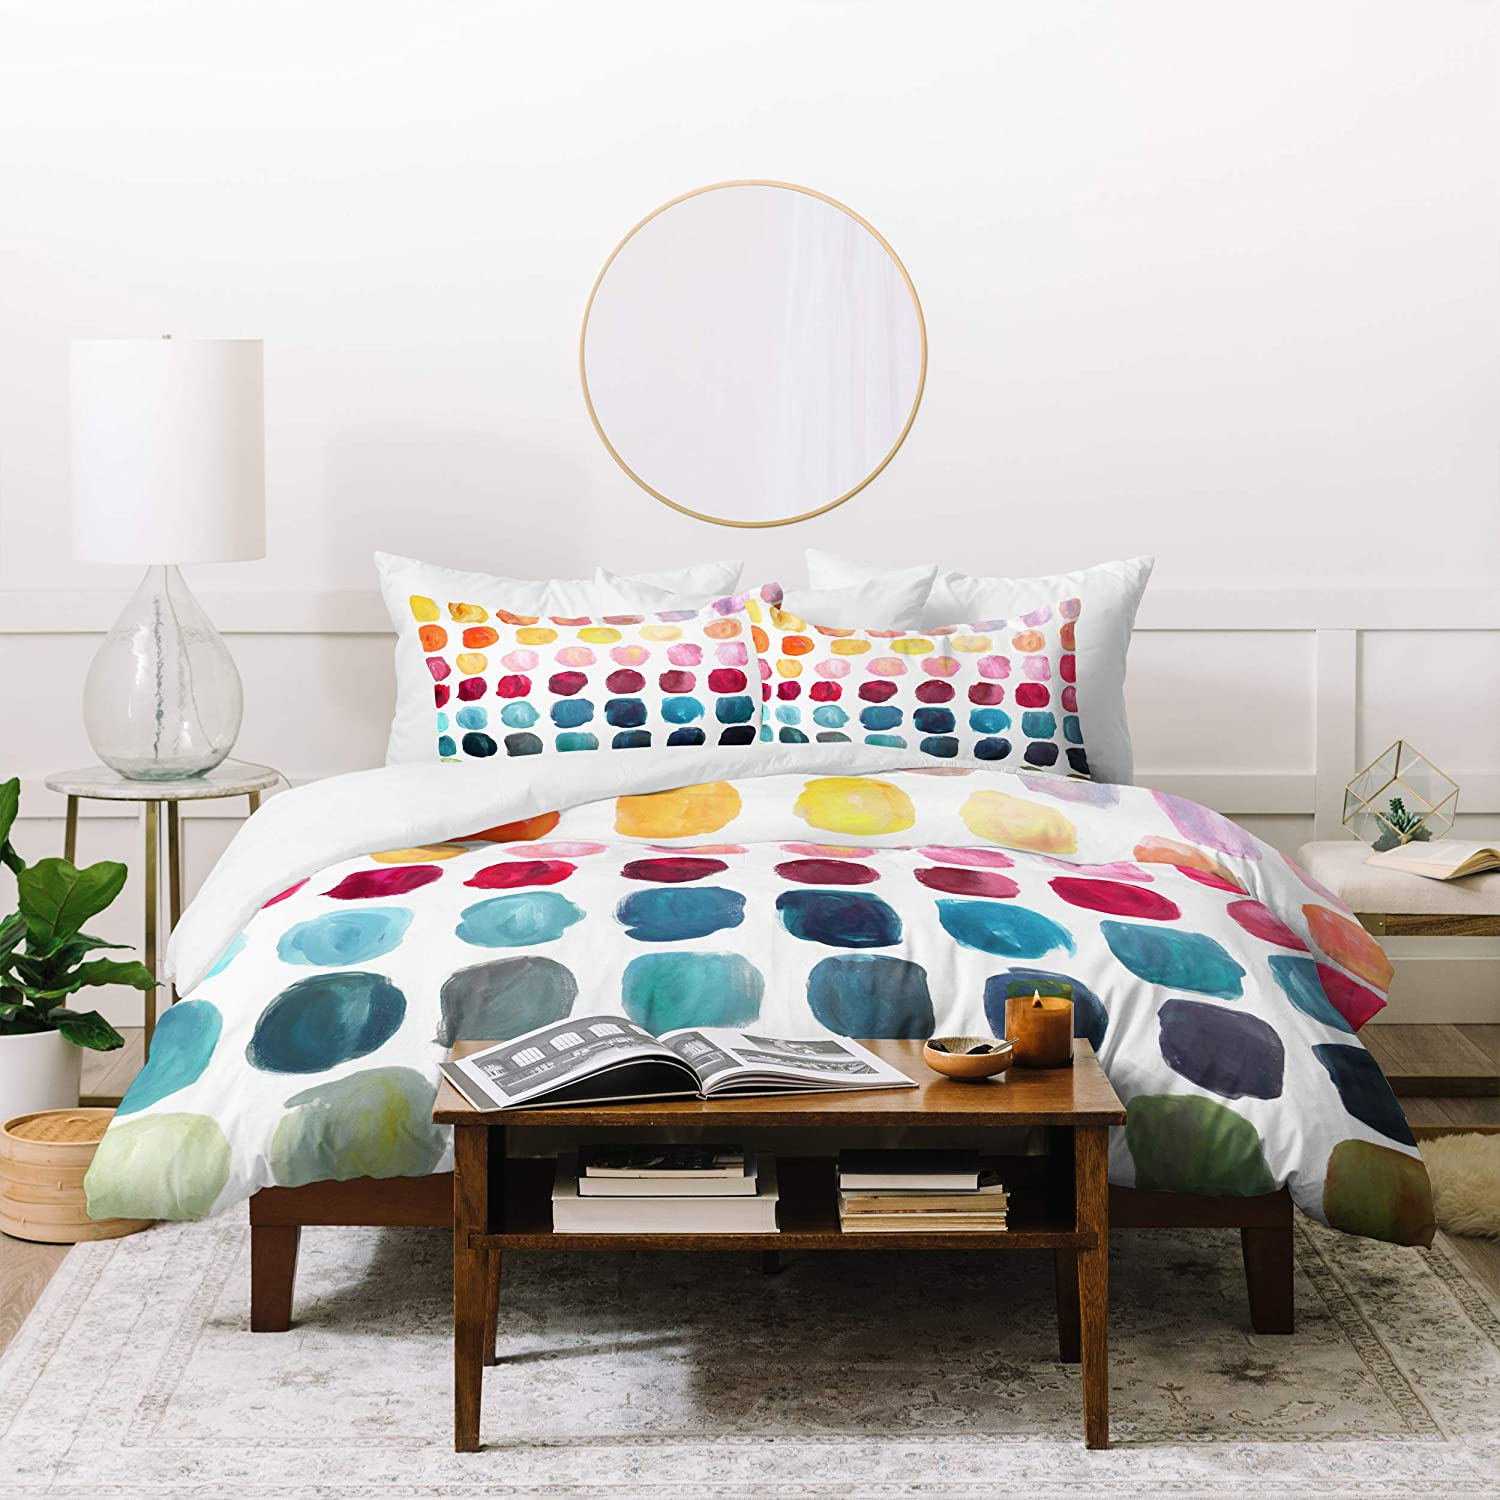 Deny Designs Stephanie Corfee Color Palette Duvet Set with Two Pillow Shams, King, Multi